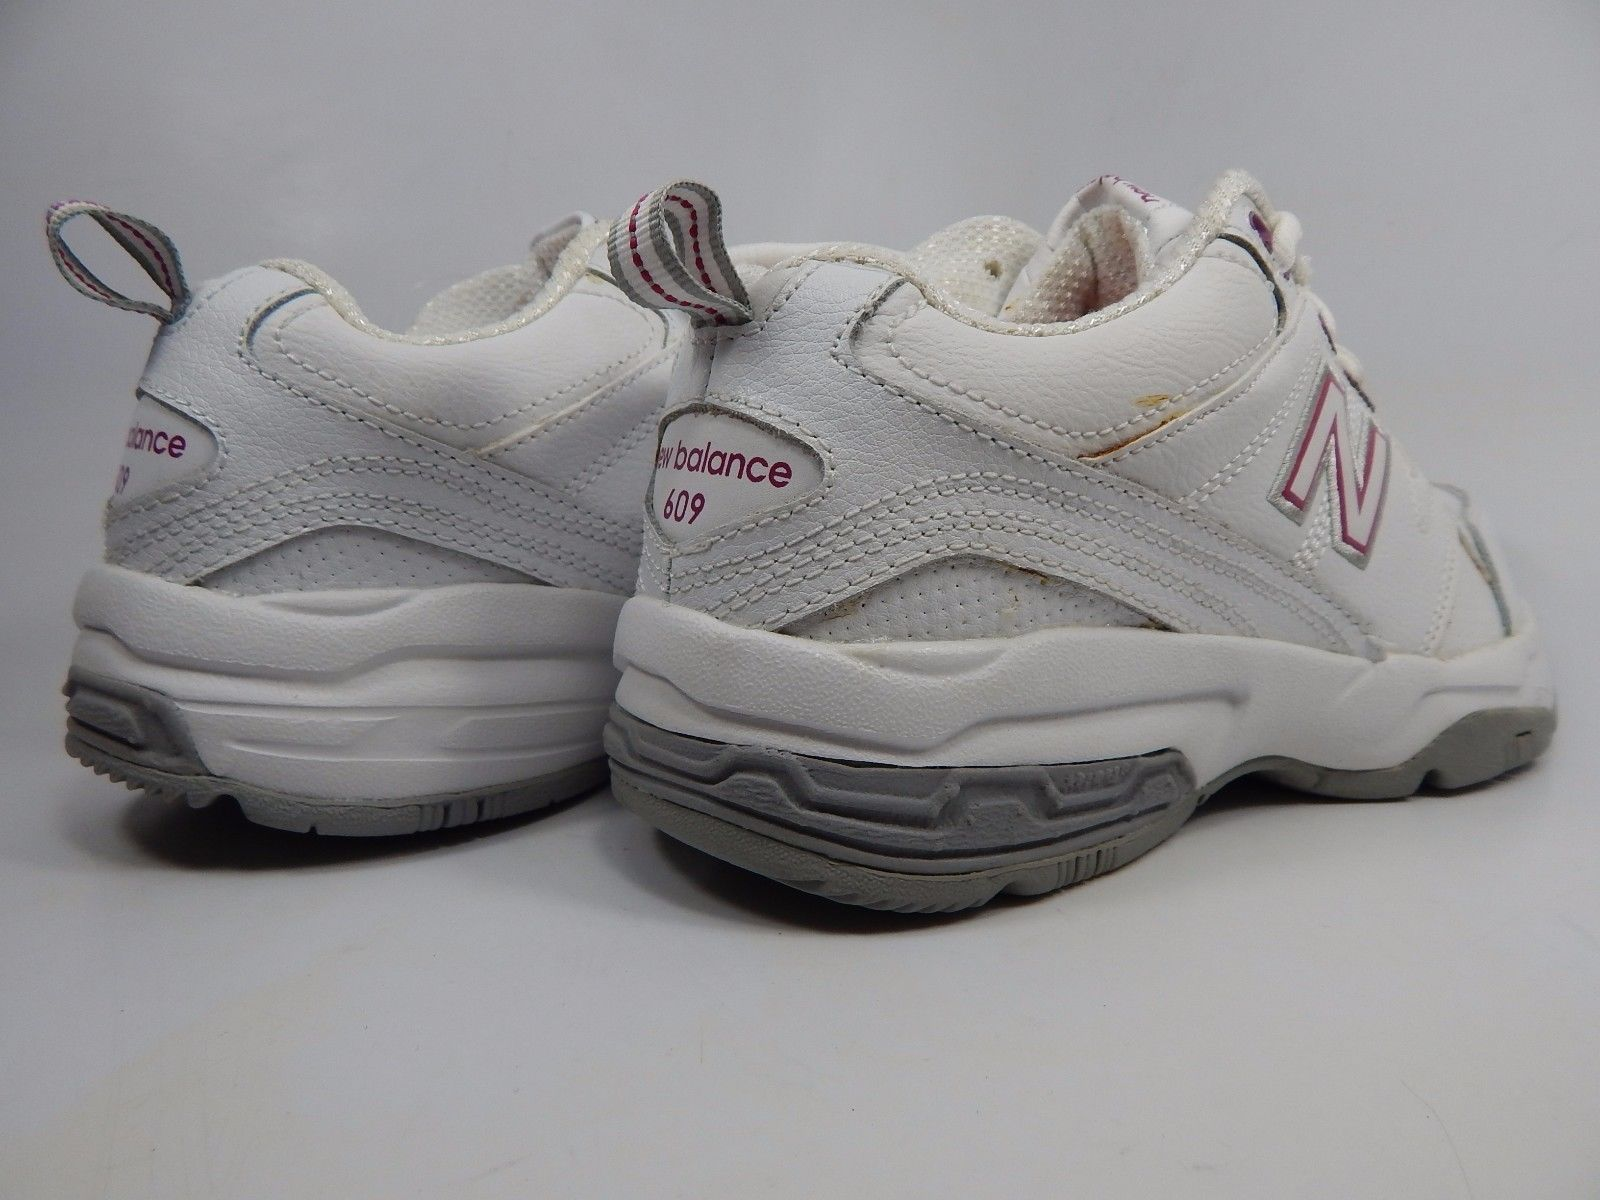 New Balance 609 v2 Women's Training Shoes Size US 6.5 D WIDE EU 37 WX609CY2